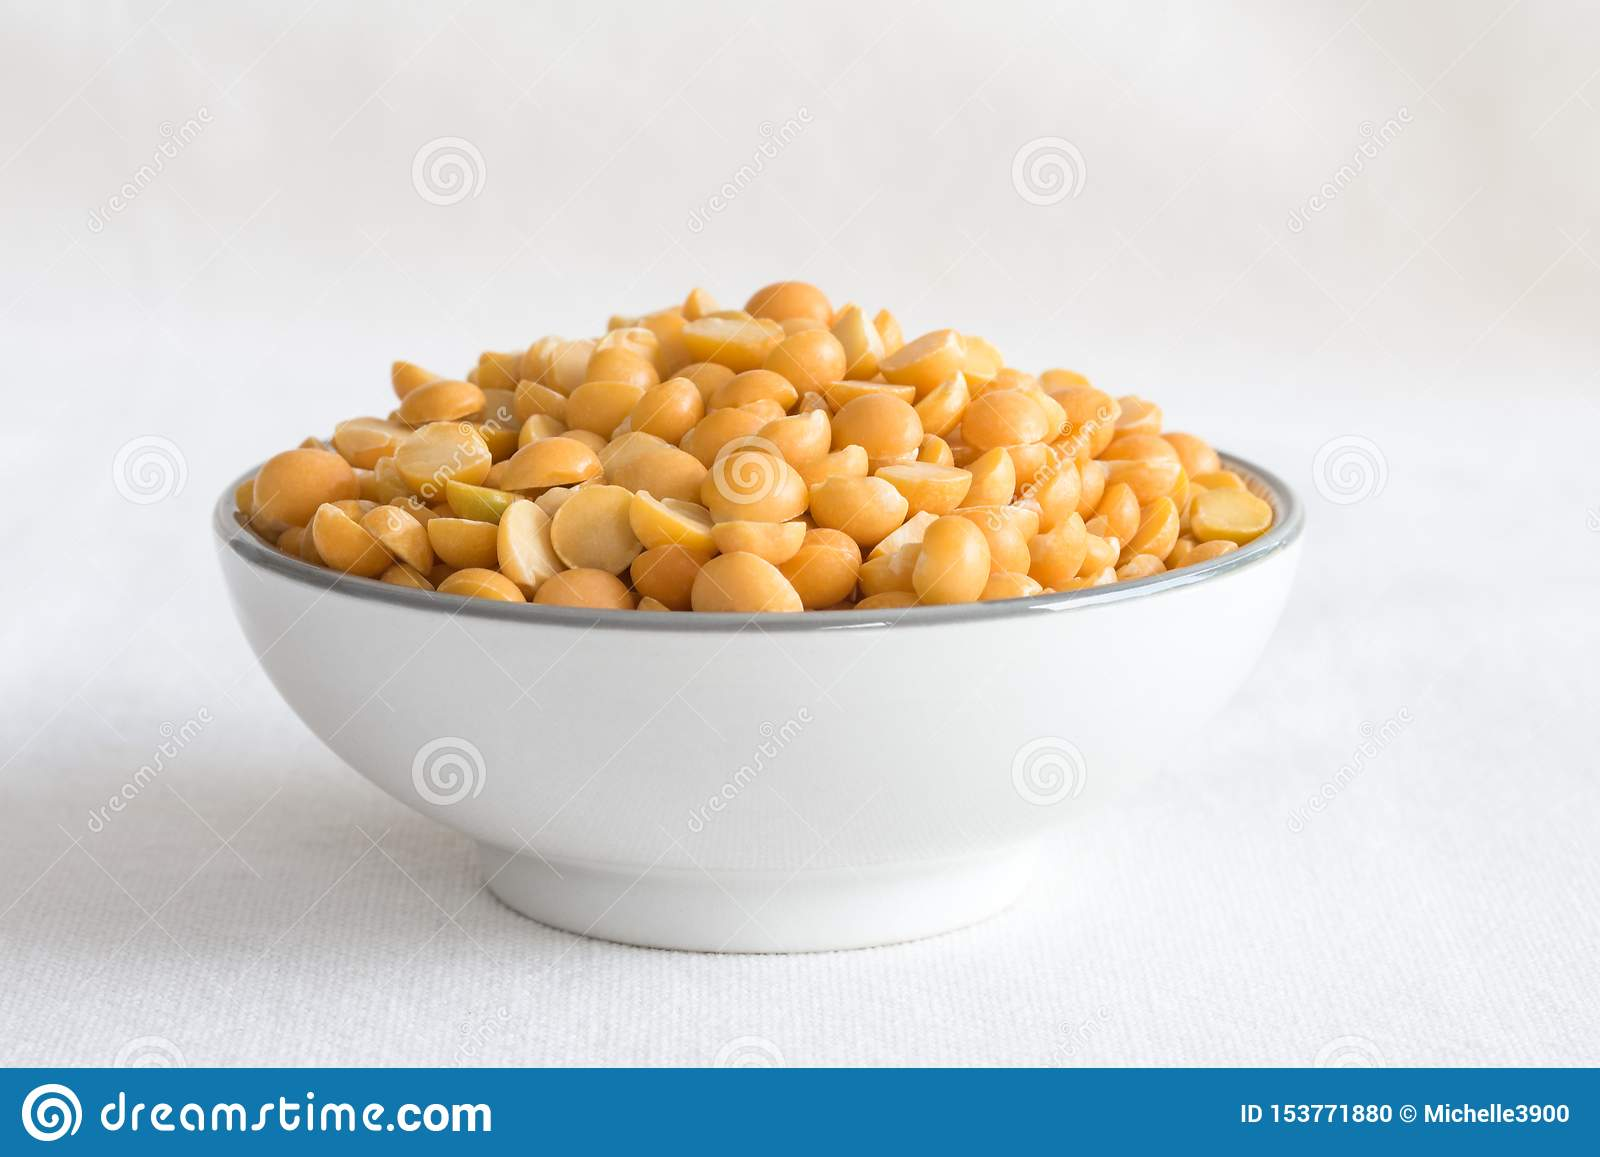 Yellow Split Peas in a Bowl